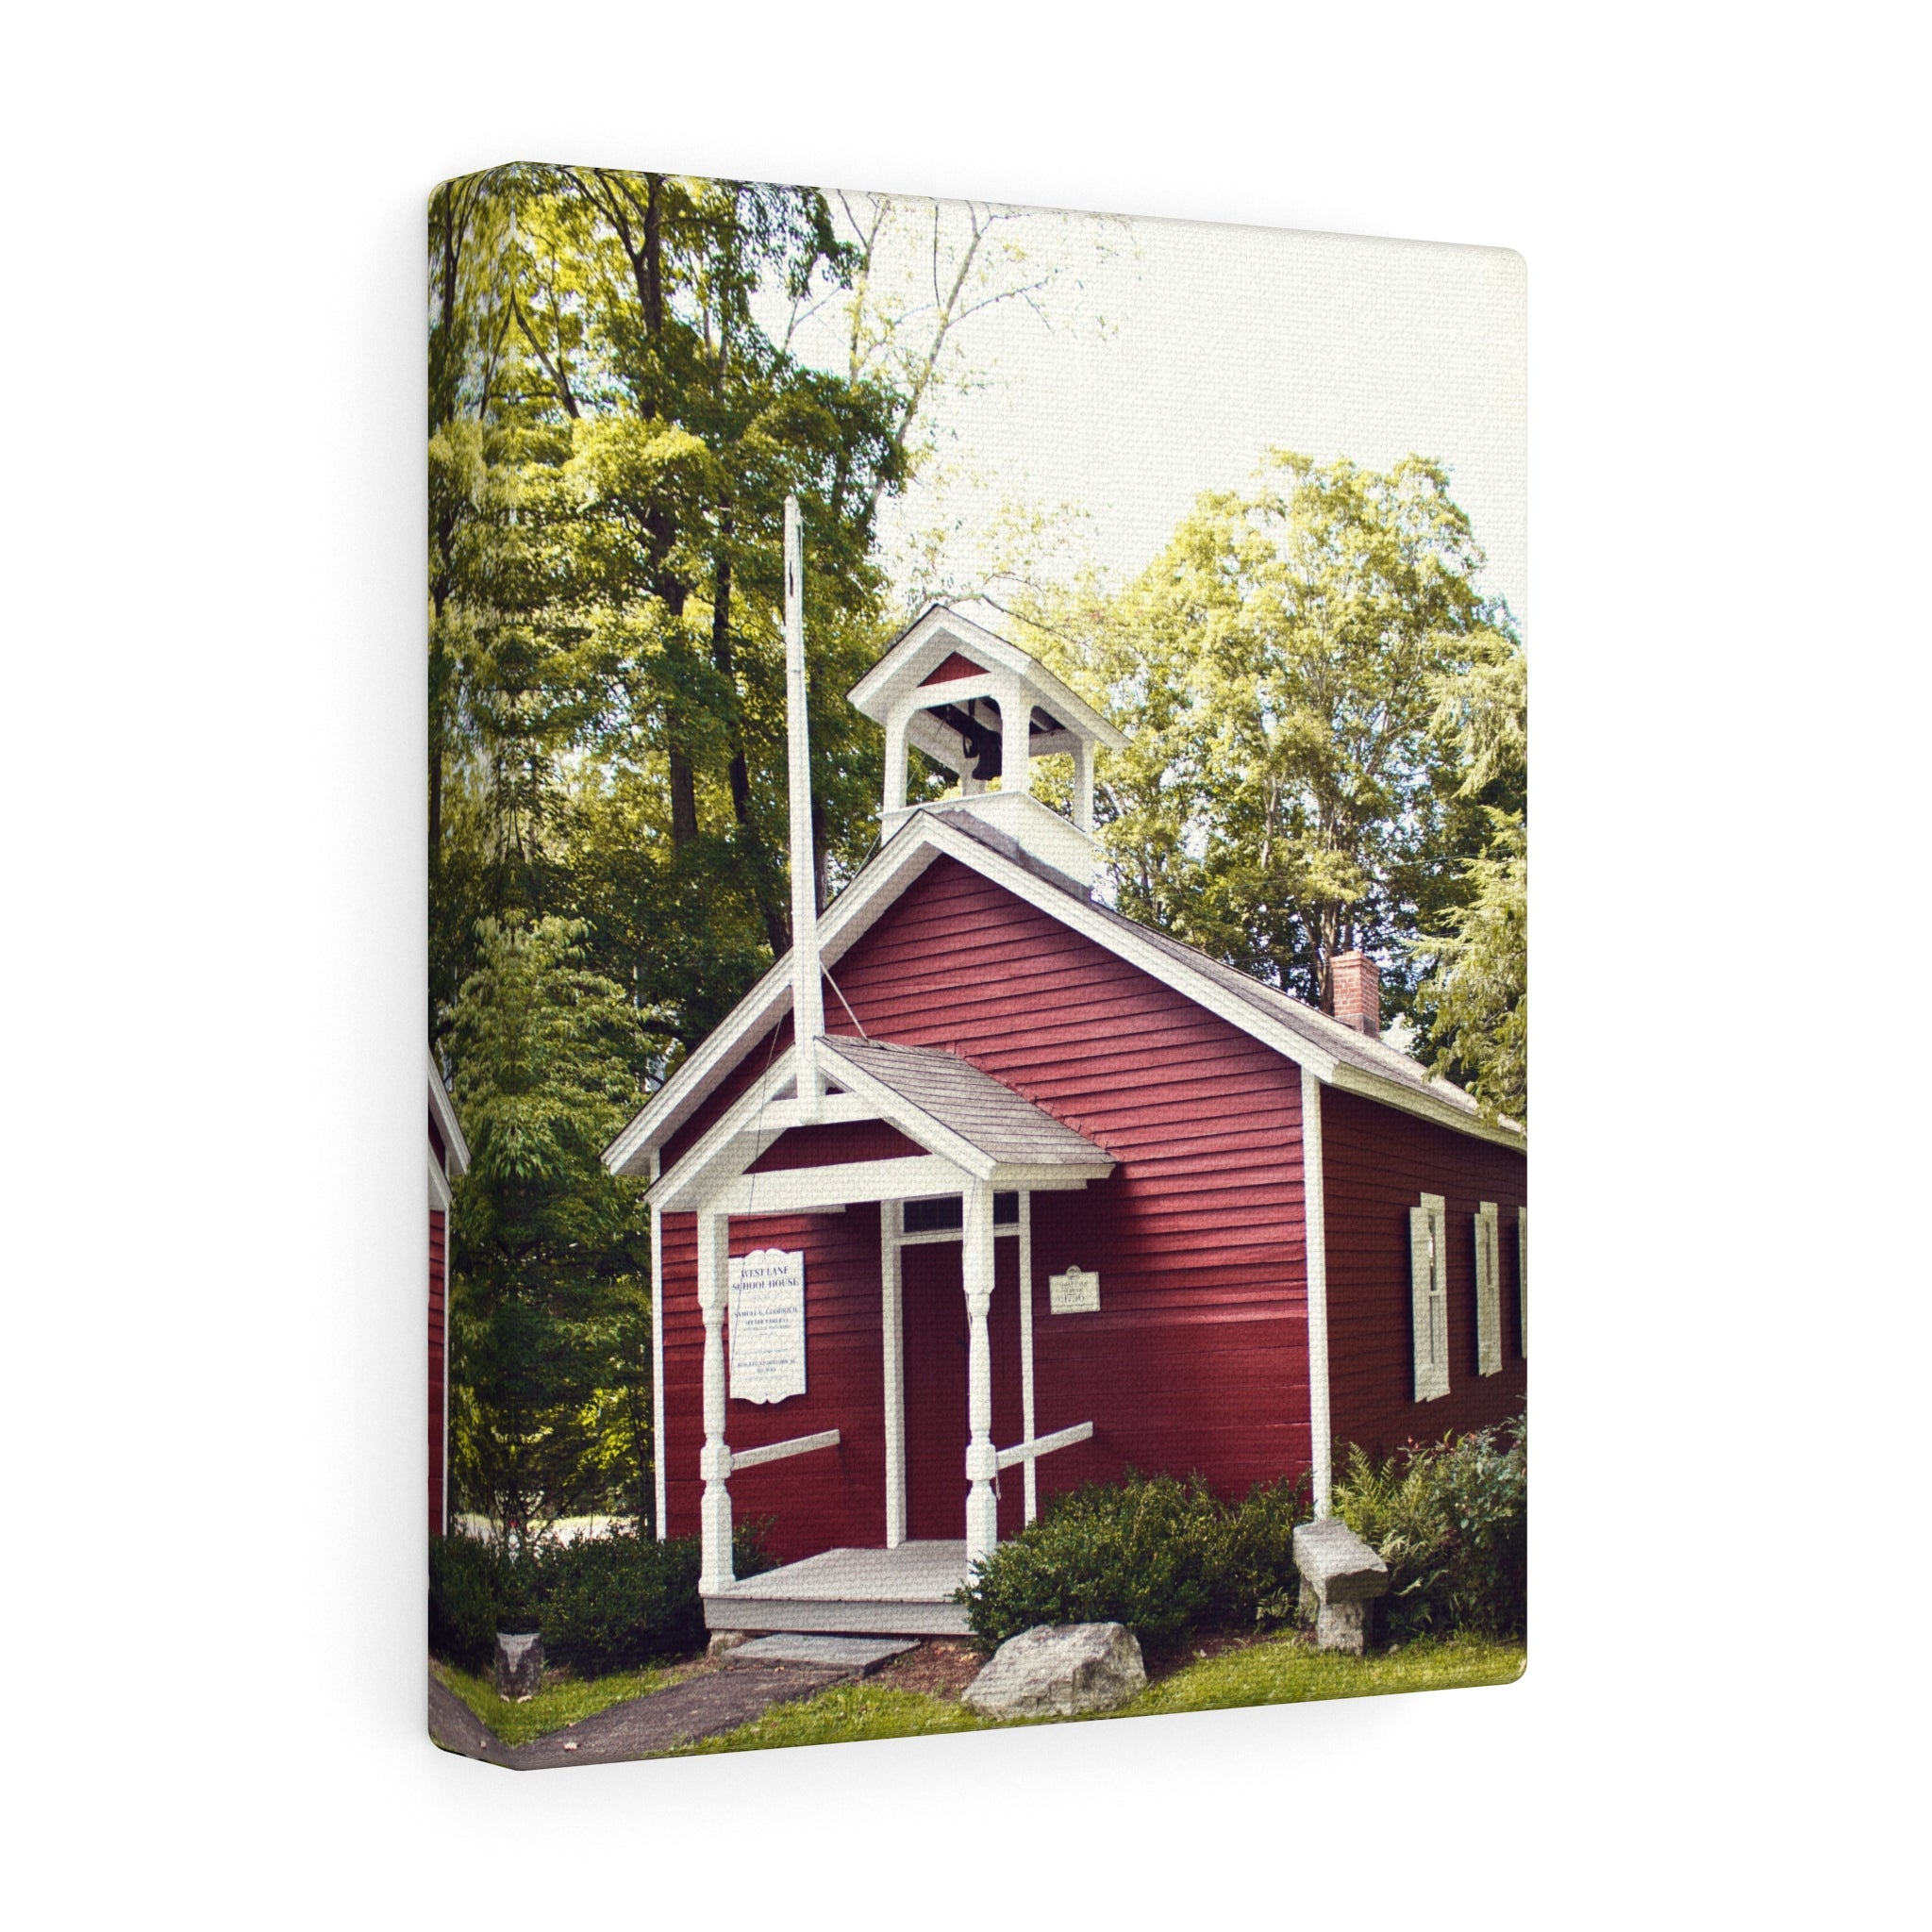 The West Lane Schoolhouse Canvas Gallery Wrap